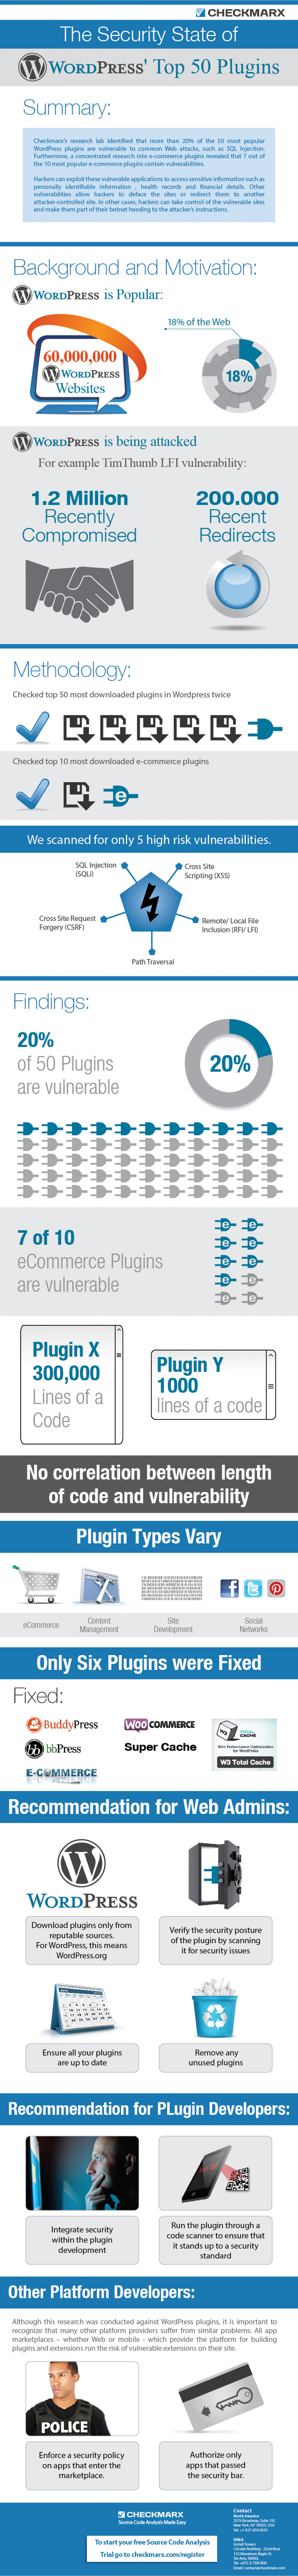 Security Wordpress Plugin Report Infographic